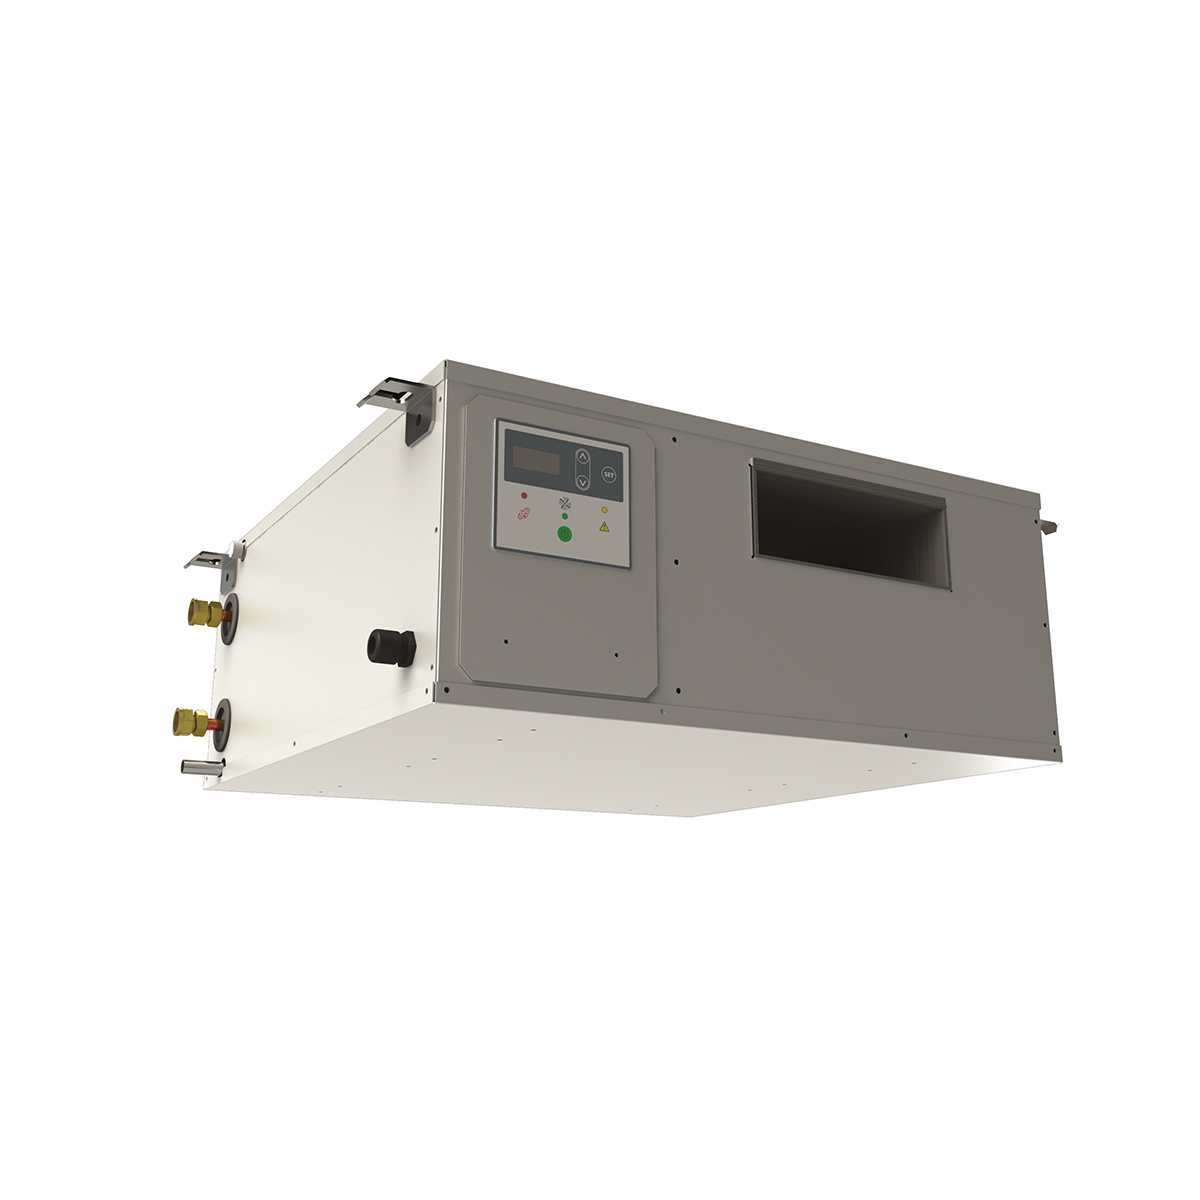 dehumidifiers for radiant air conditioning systems